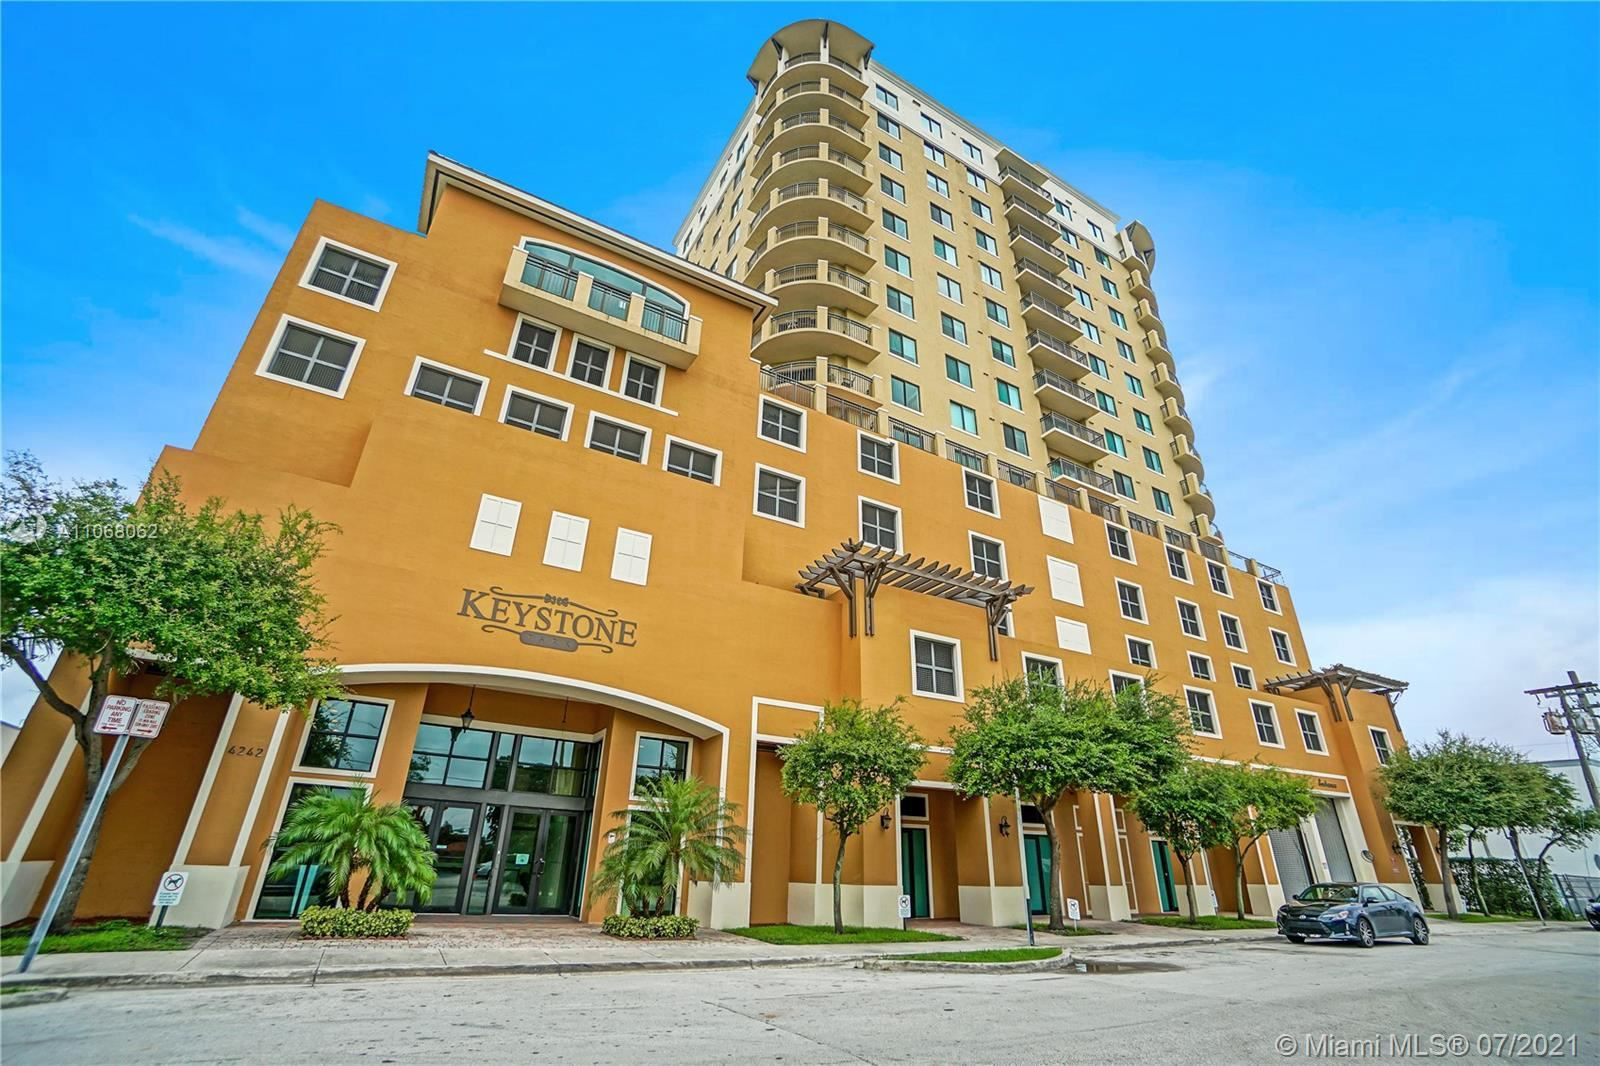 4242 NW 2nd St #913, Miami, FL 33126 - #: A11068062